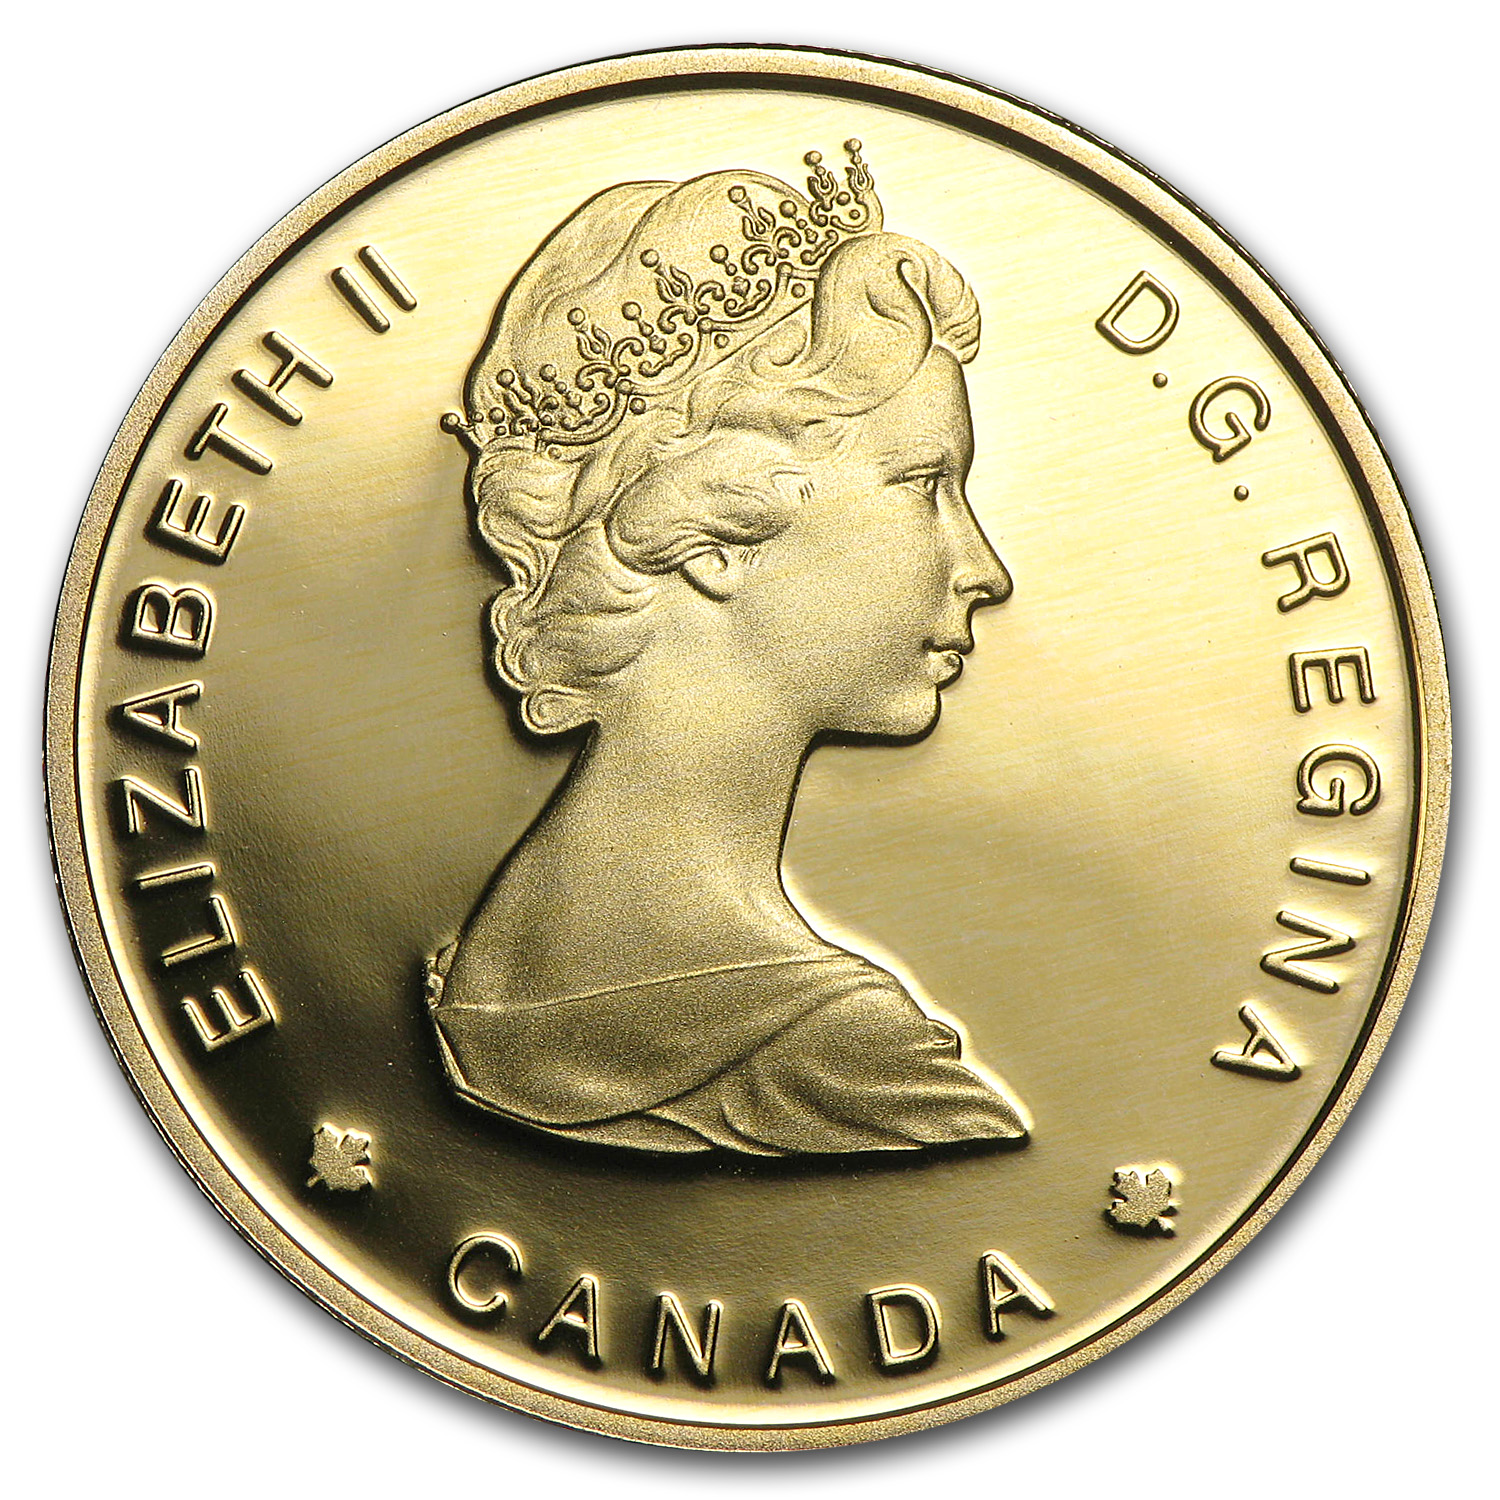 1989 Canada 1/4 oz Proof Gold $100 Sainte-Marie